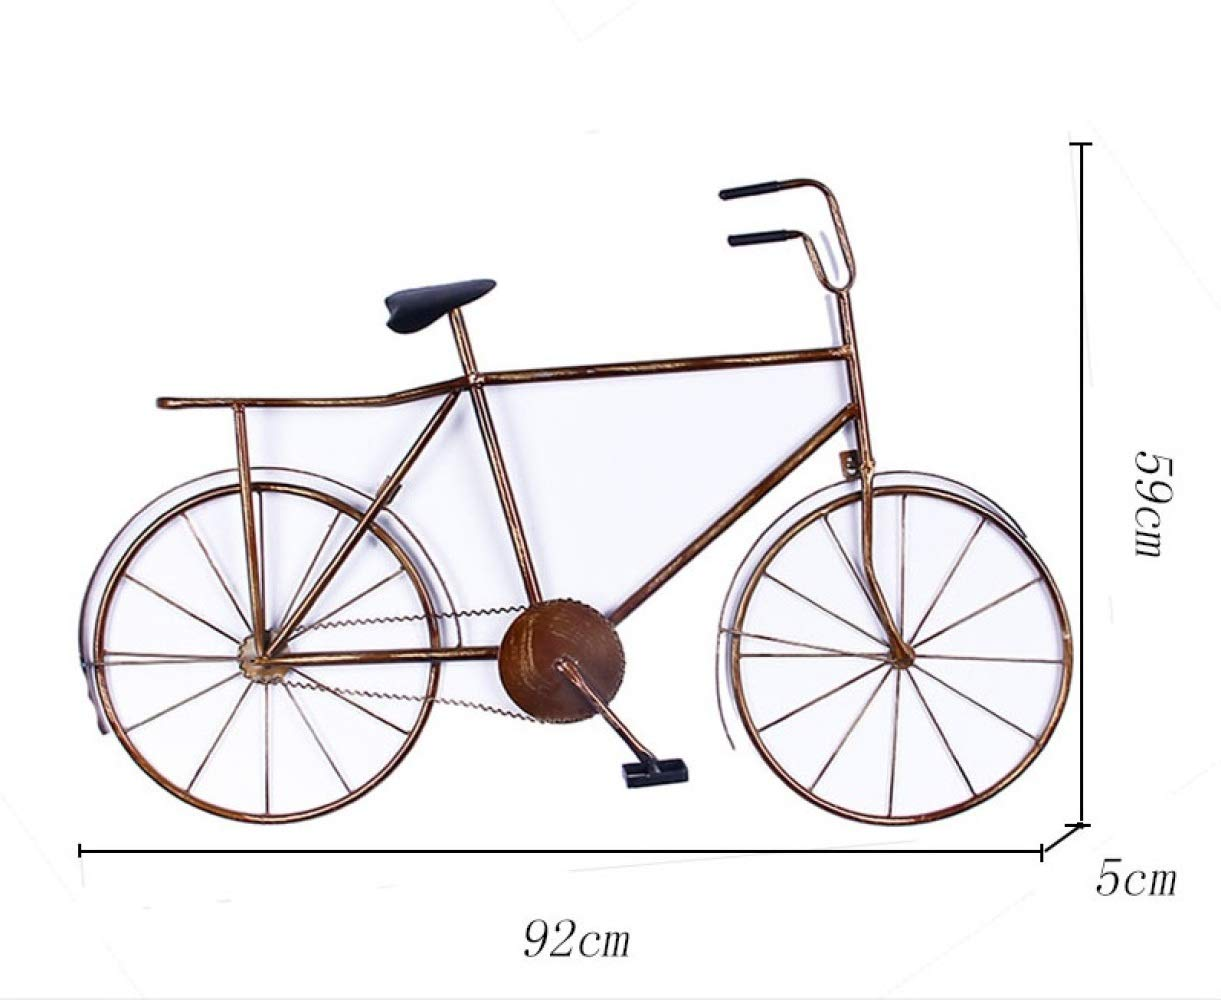 nouler Vintage Wrought Iron Bicycle Wall Hanging Decoration Cafe Personality Creative Home,Section A,One Size